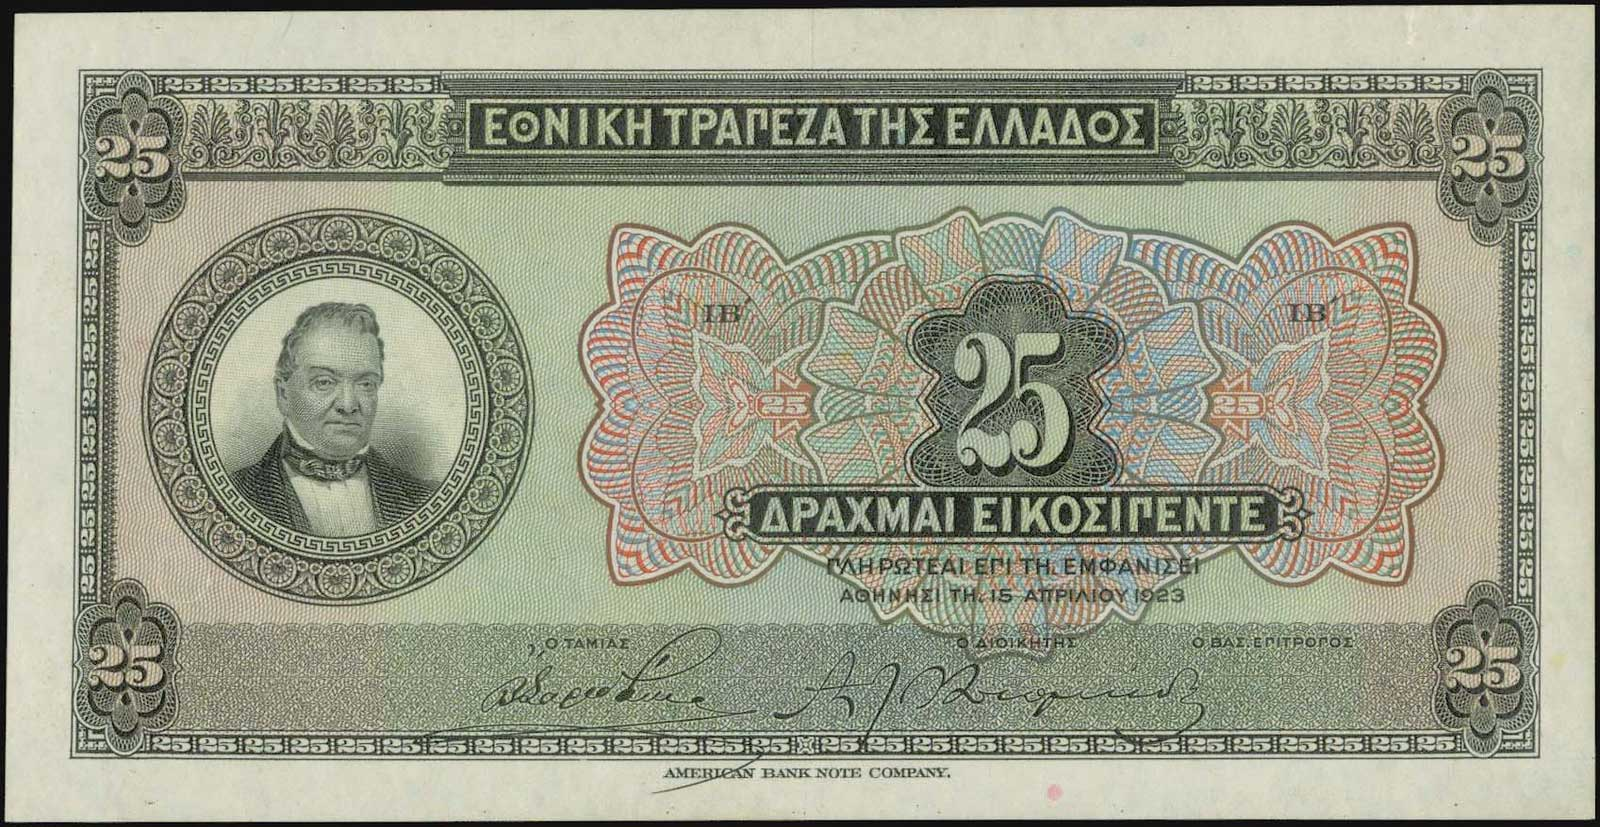 Lot 9275 - GREECE-  PAPER MONEY - BANKNOTES National Bank of Greece -  A. Karamitsos Public & LIVE Bid Auction 610 Coins, Medals & Banknotes